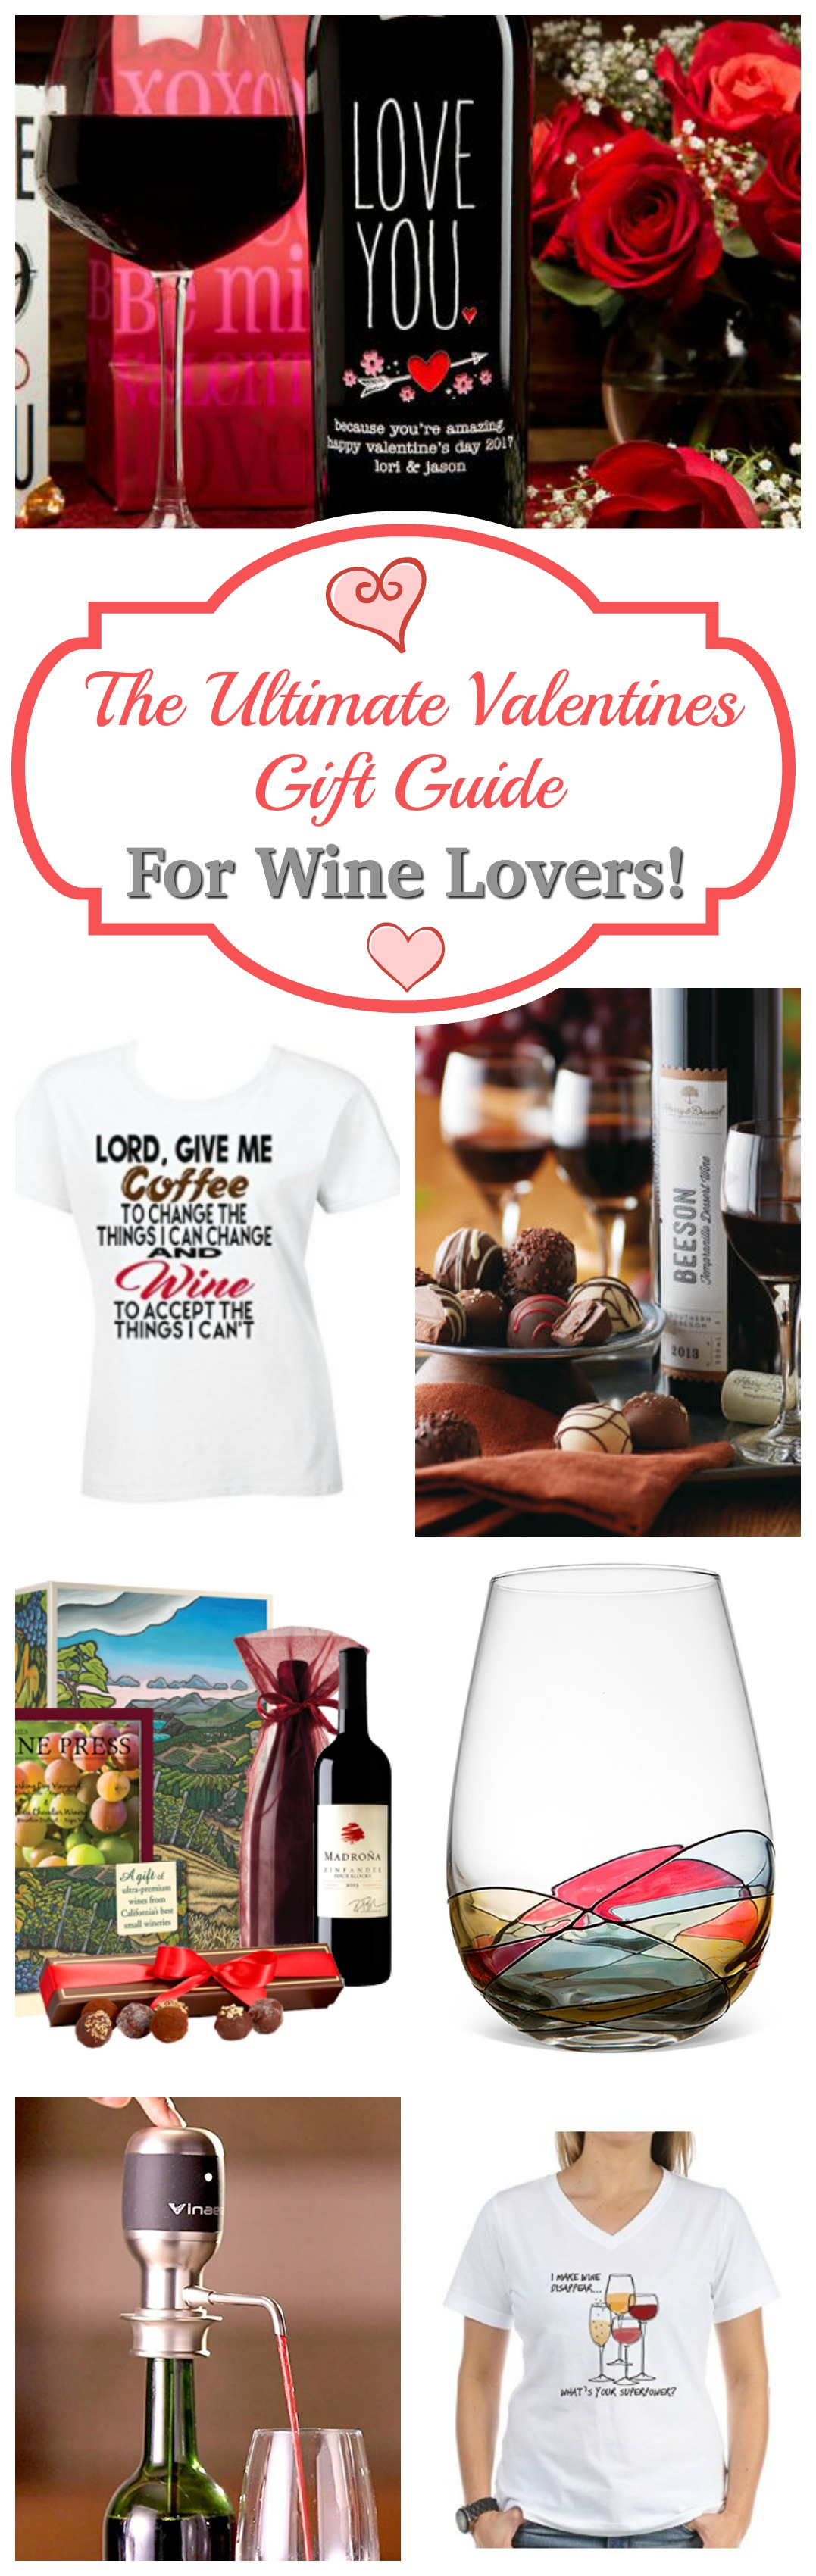 Great Gift Ideas for your Valentine's Wine Lover! We LOVE the etched wine bottles! #gift